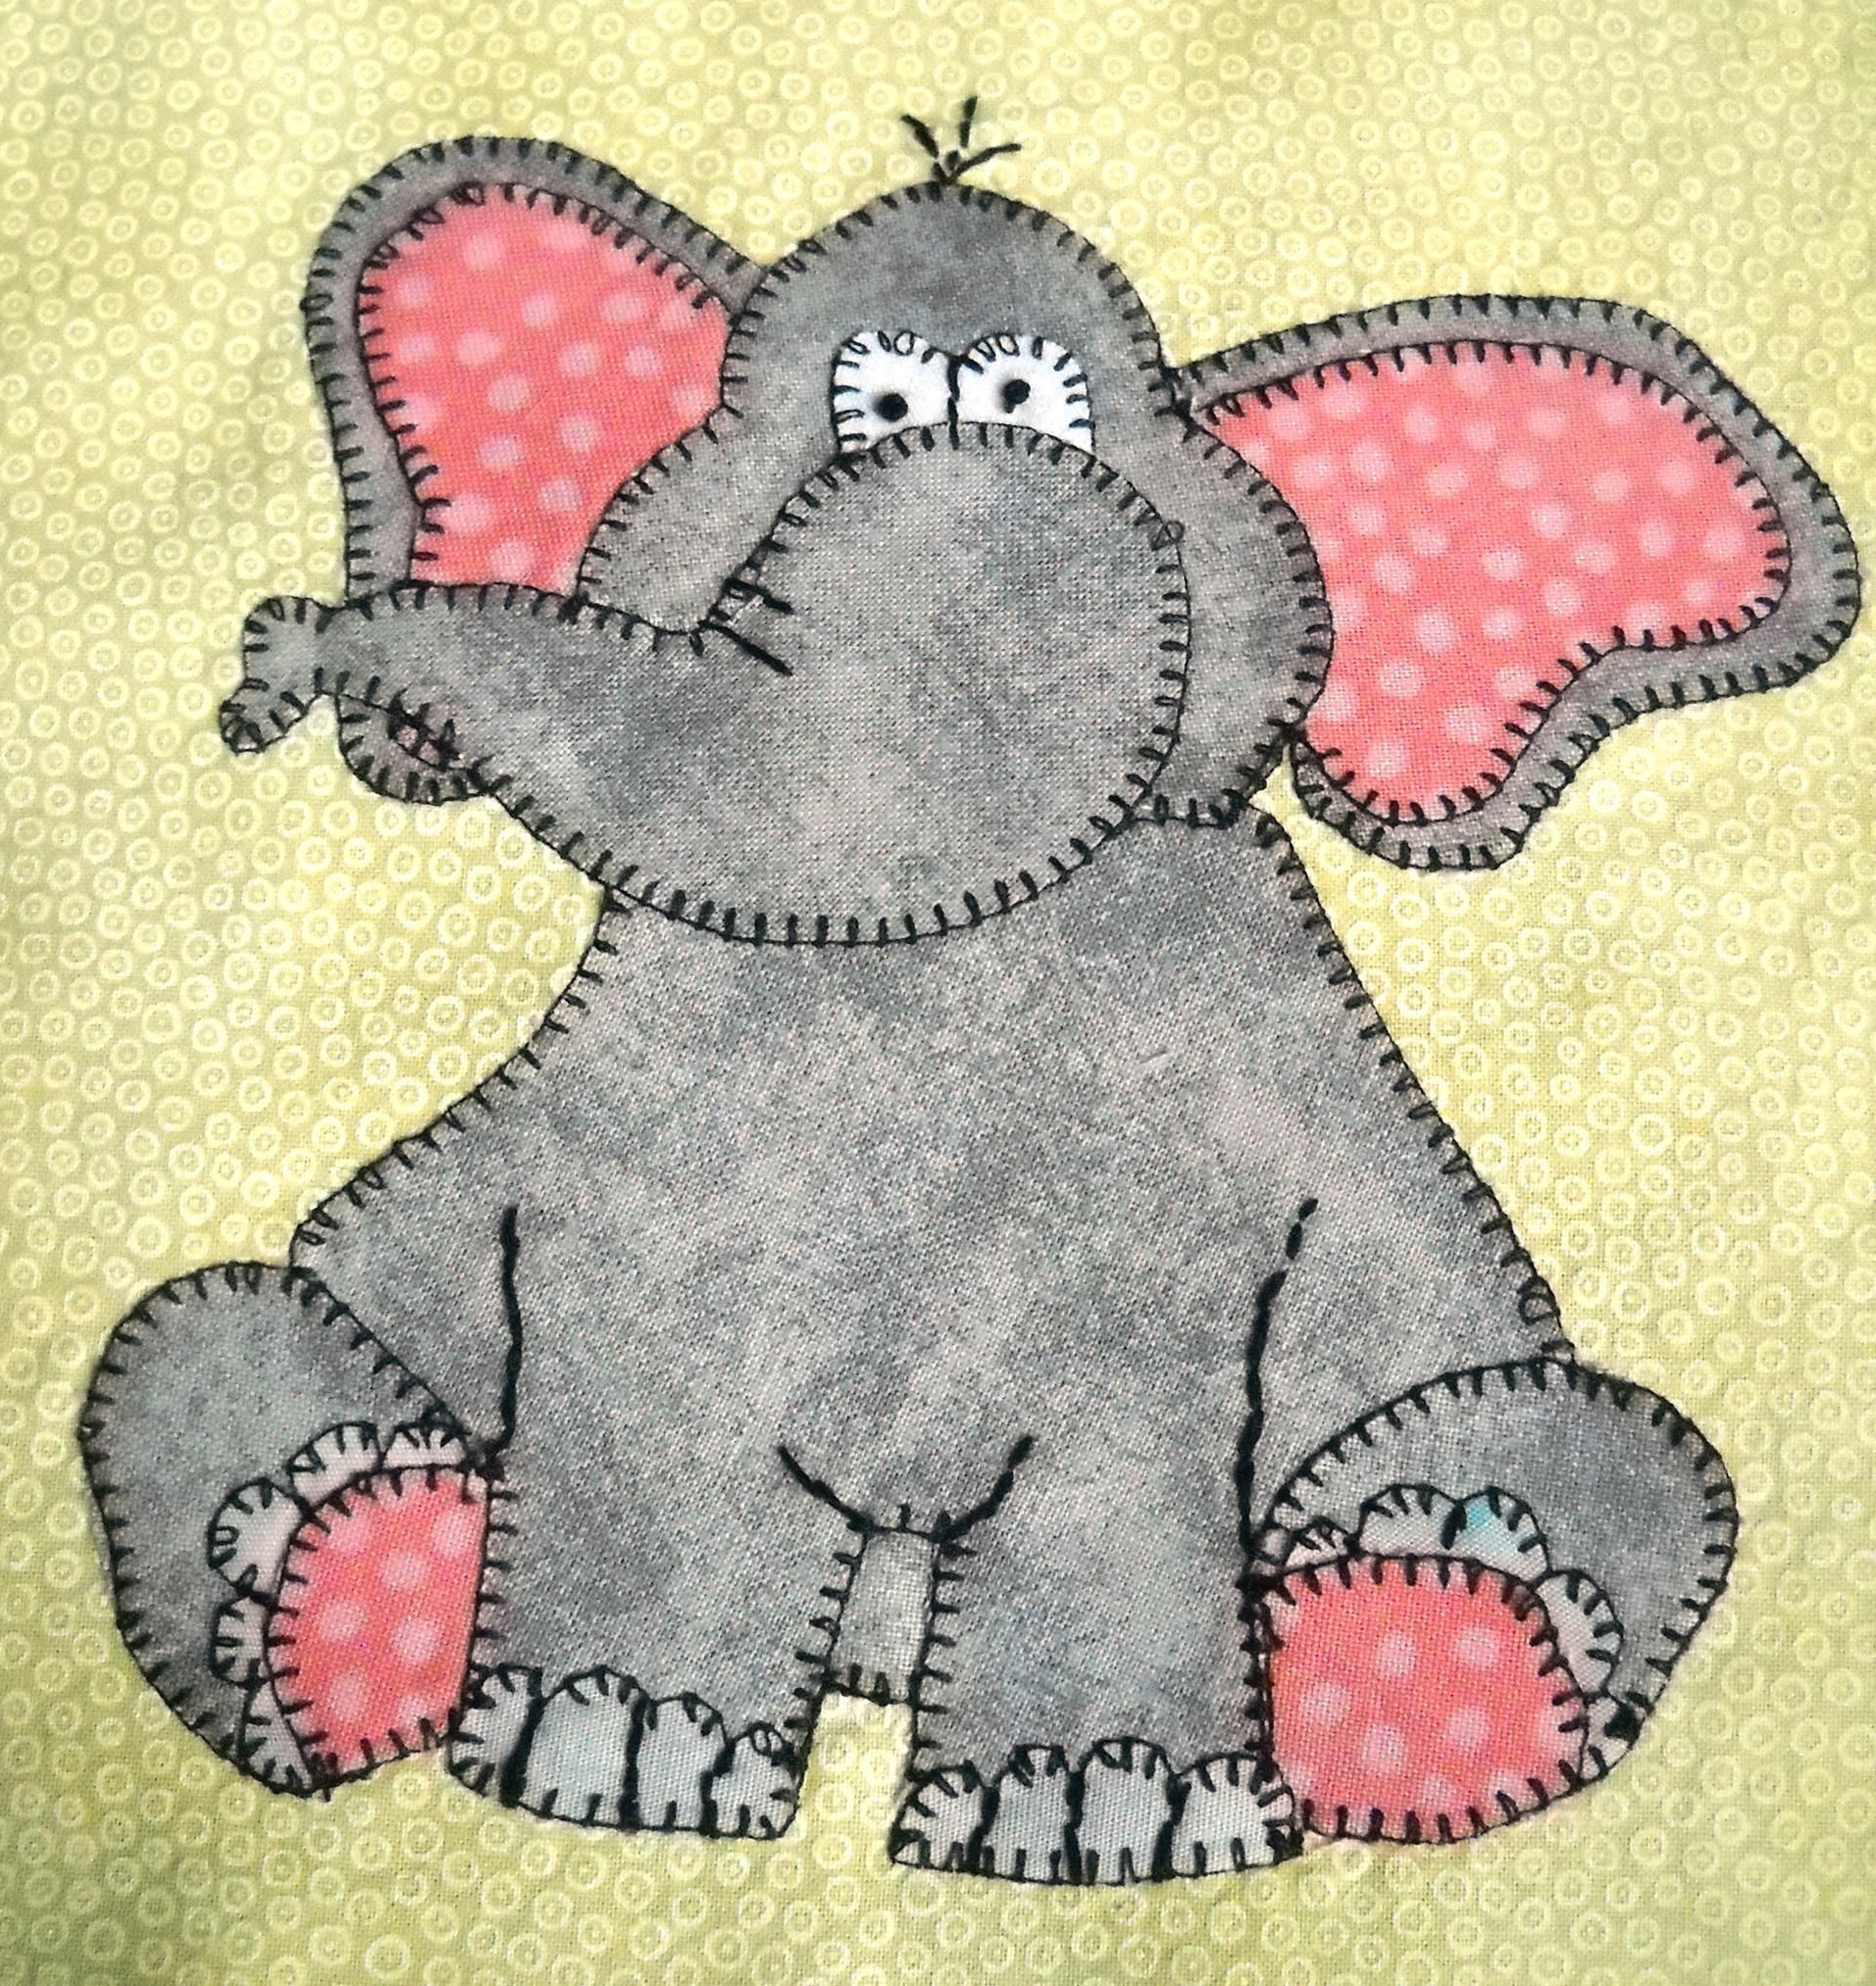 Elephant (African) Applique Quilt Block | Applique quilts, Patchwork ...